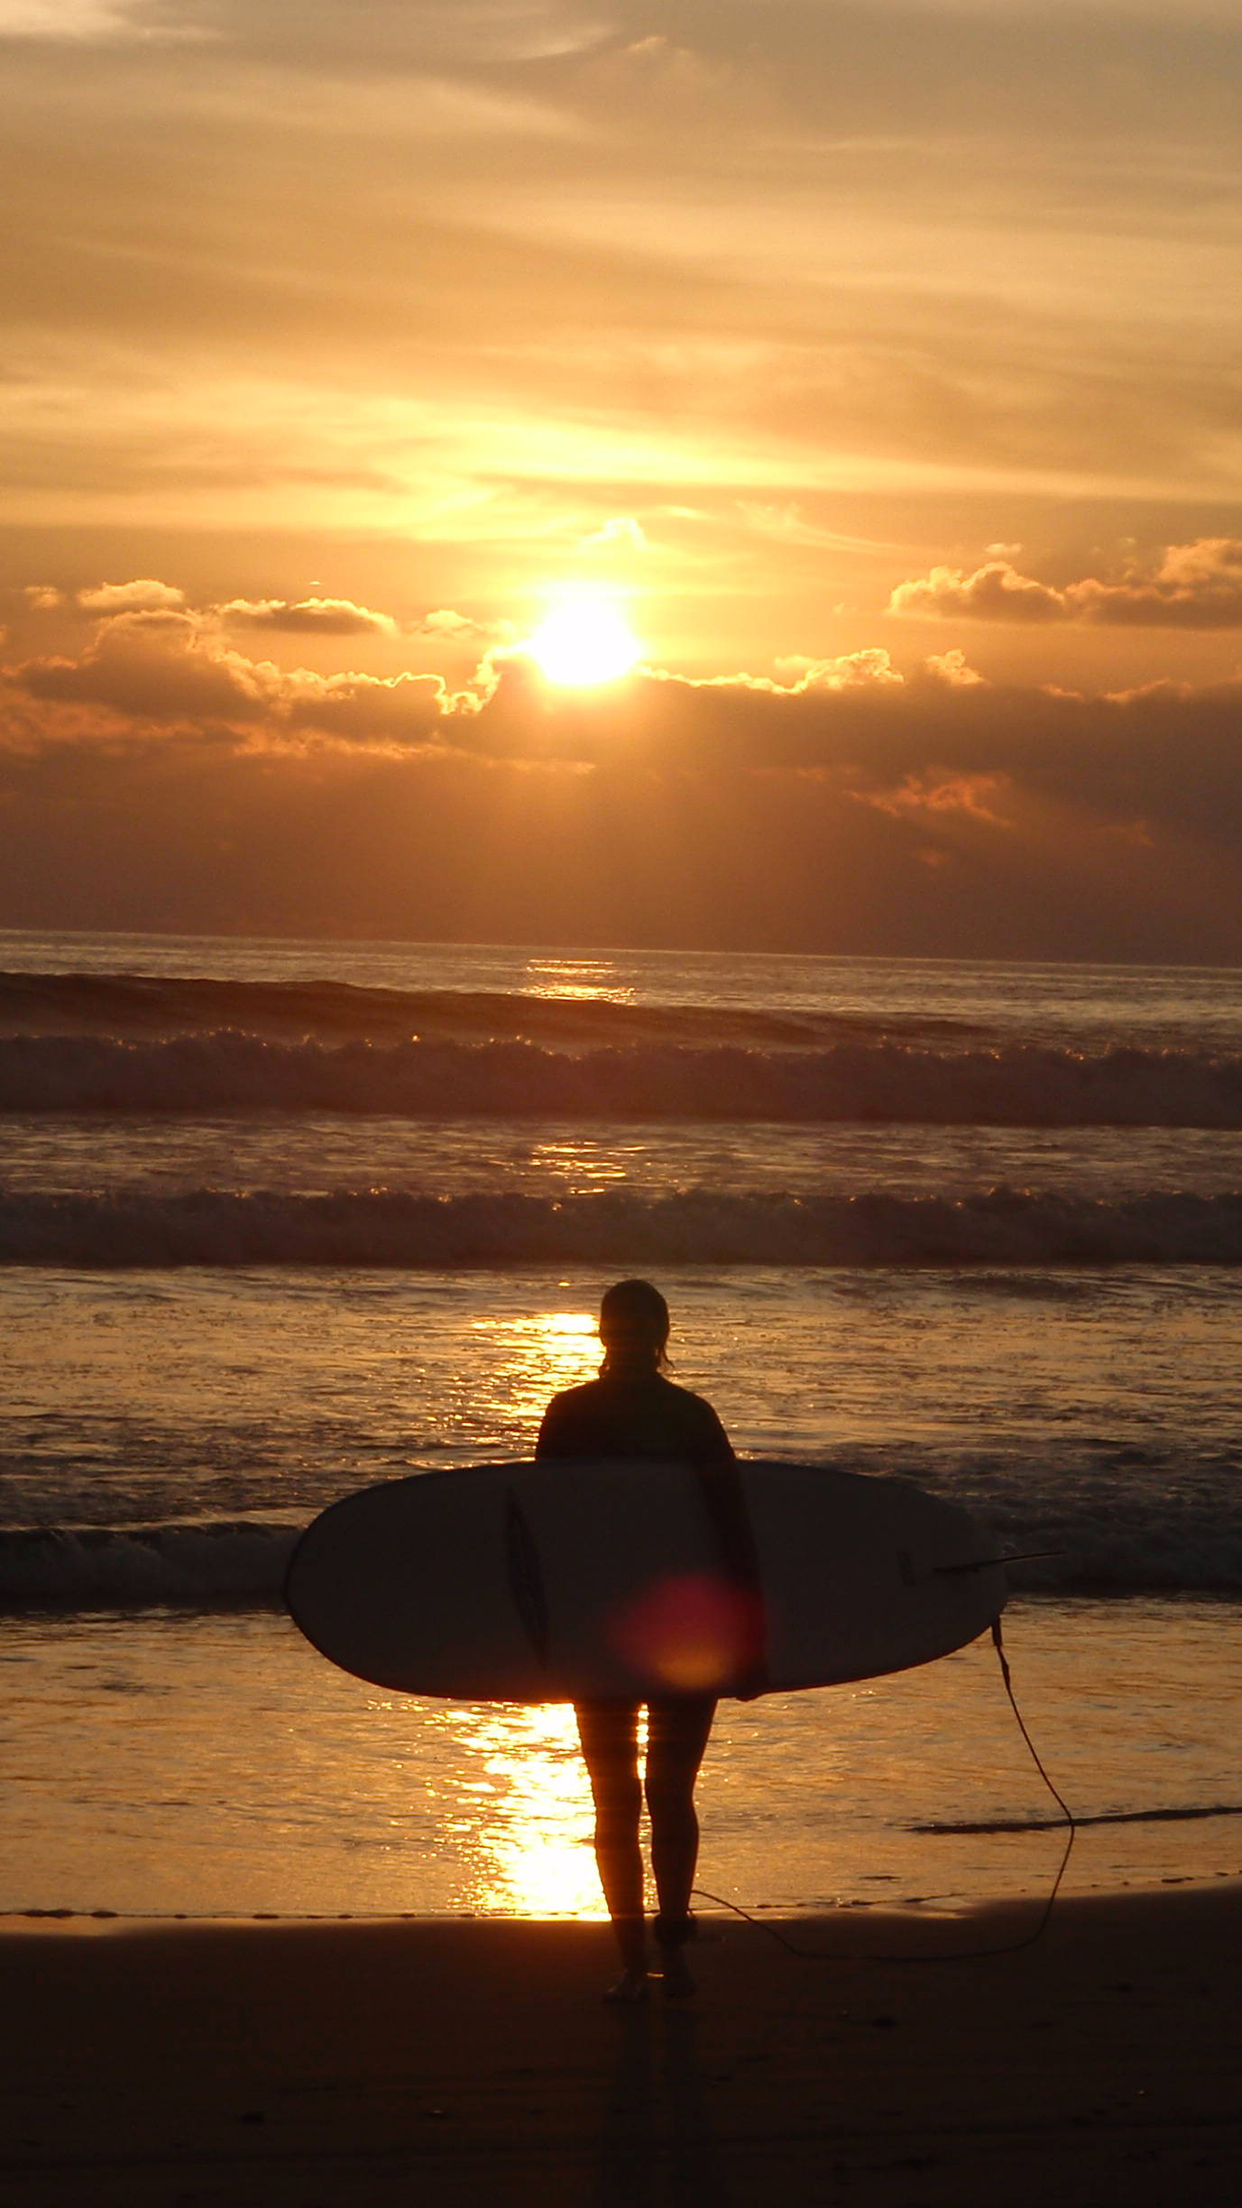 Surfing Sunset Wallpaper For Iphone X 8 7 6 Free